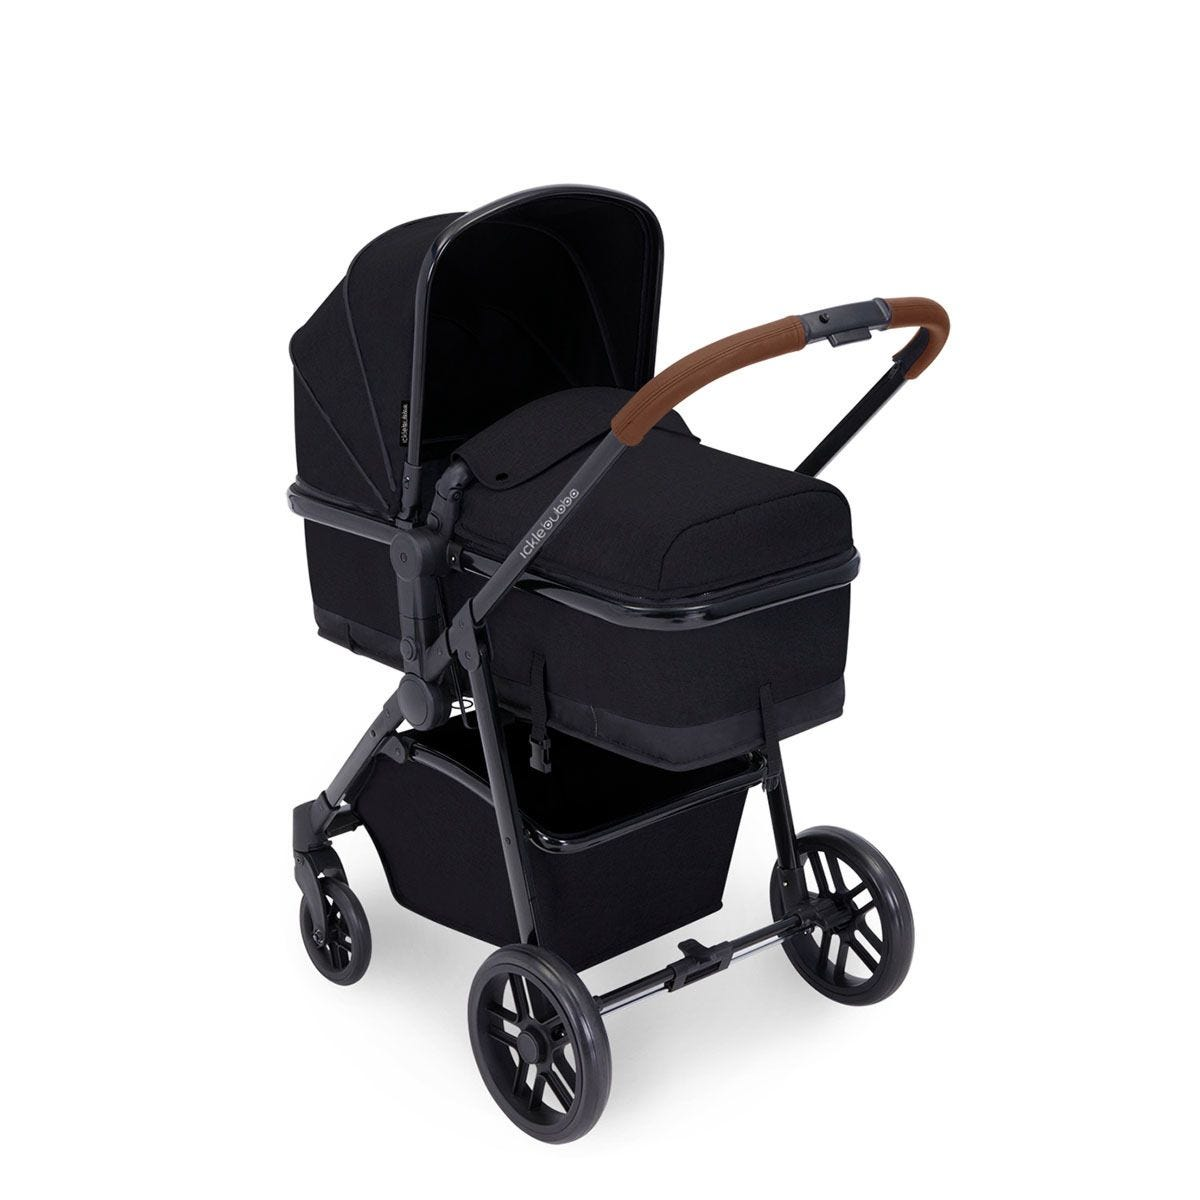 Ickle Bubba Moon i-Size 3 in 1 Travel System - Black on Black with Tan Handles